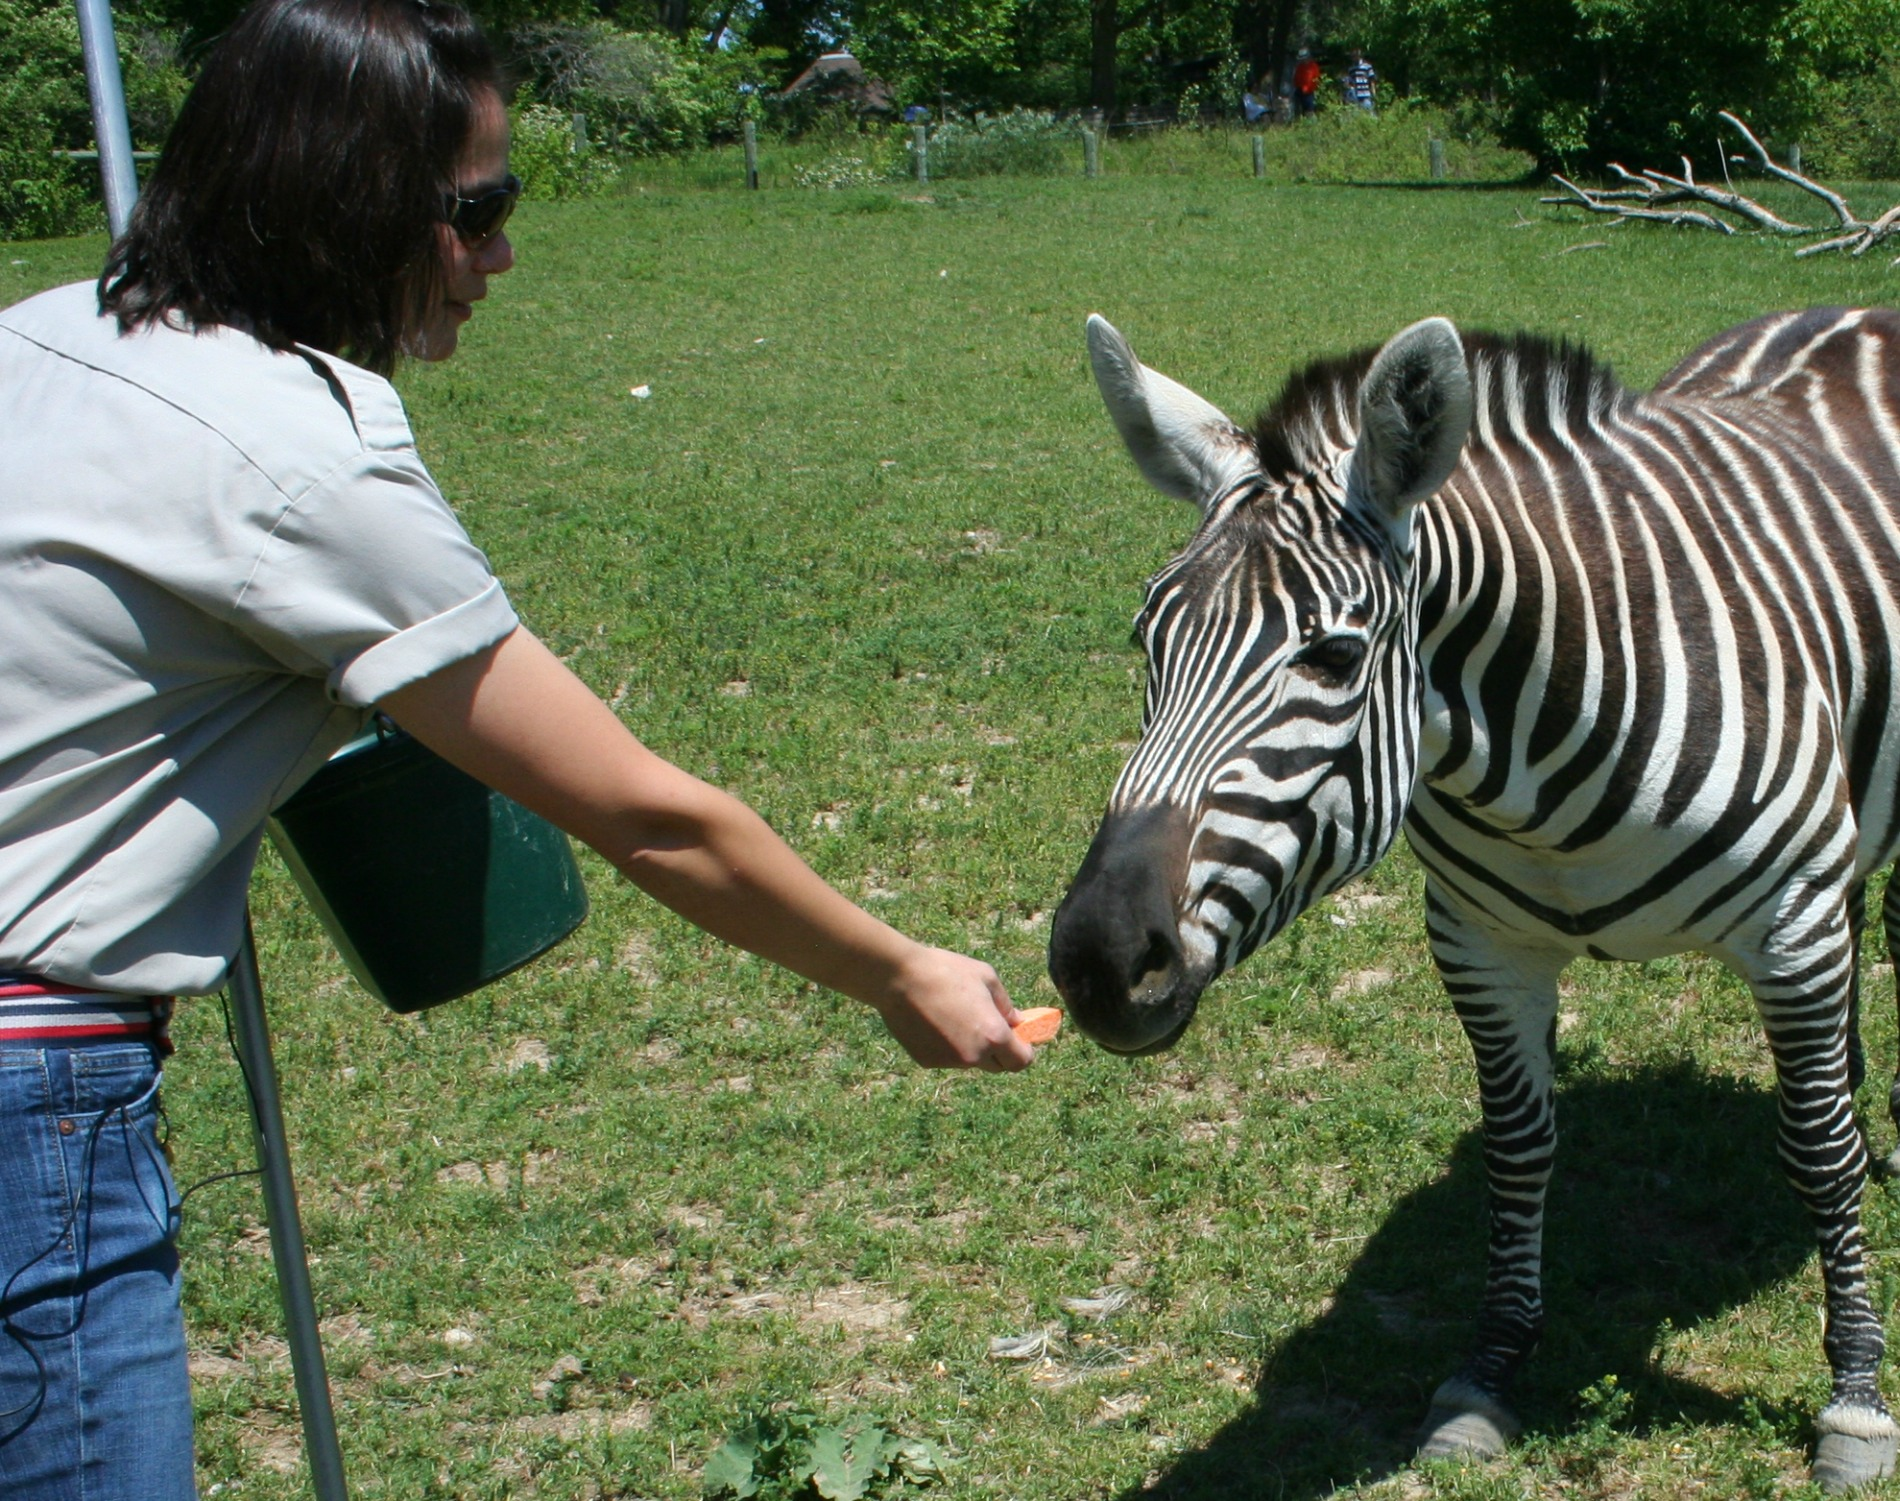 Perfect Potatoes Zebras Eating S Zebras Heads Carrots Are Used To Lure Zebras Into Barn Fort Wayne Zoo Zebras S dpreview Pictures Of Zebras